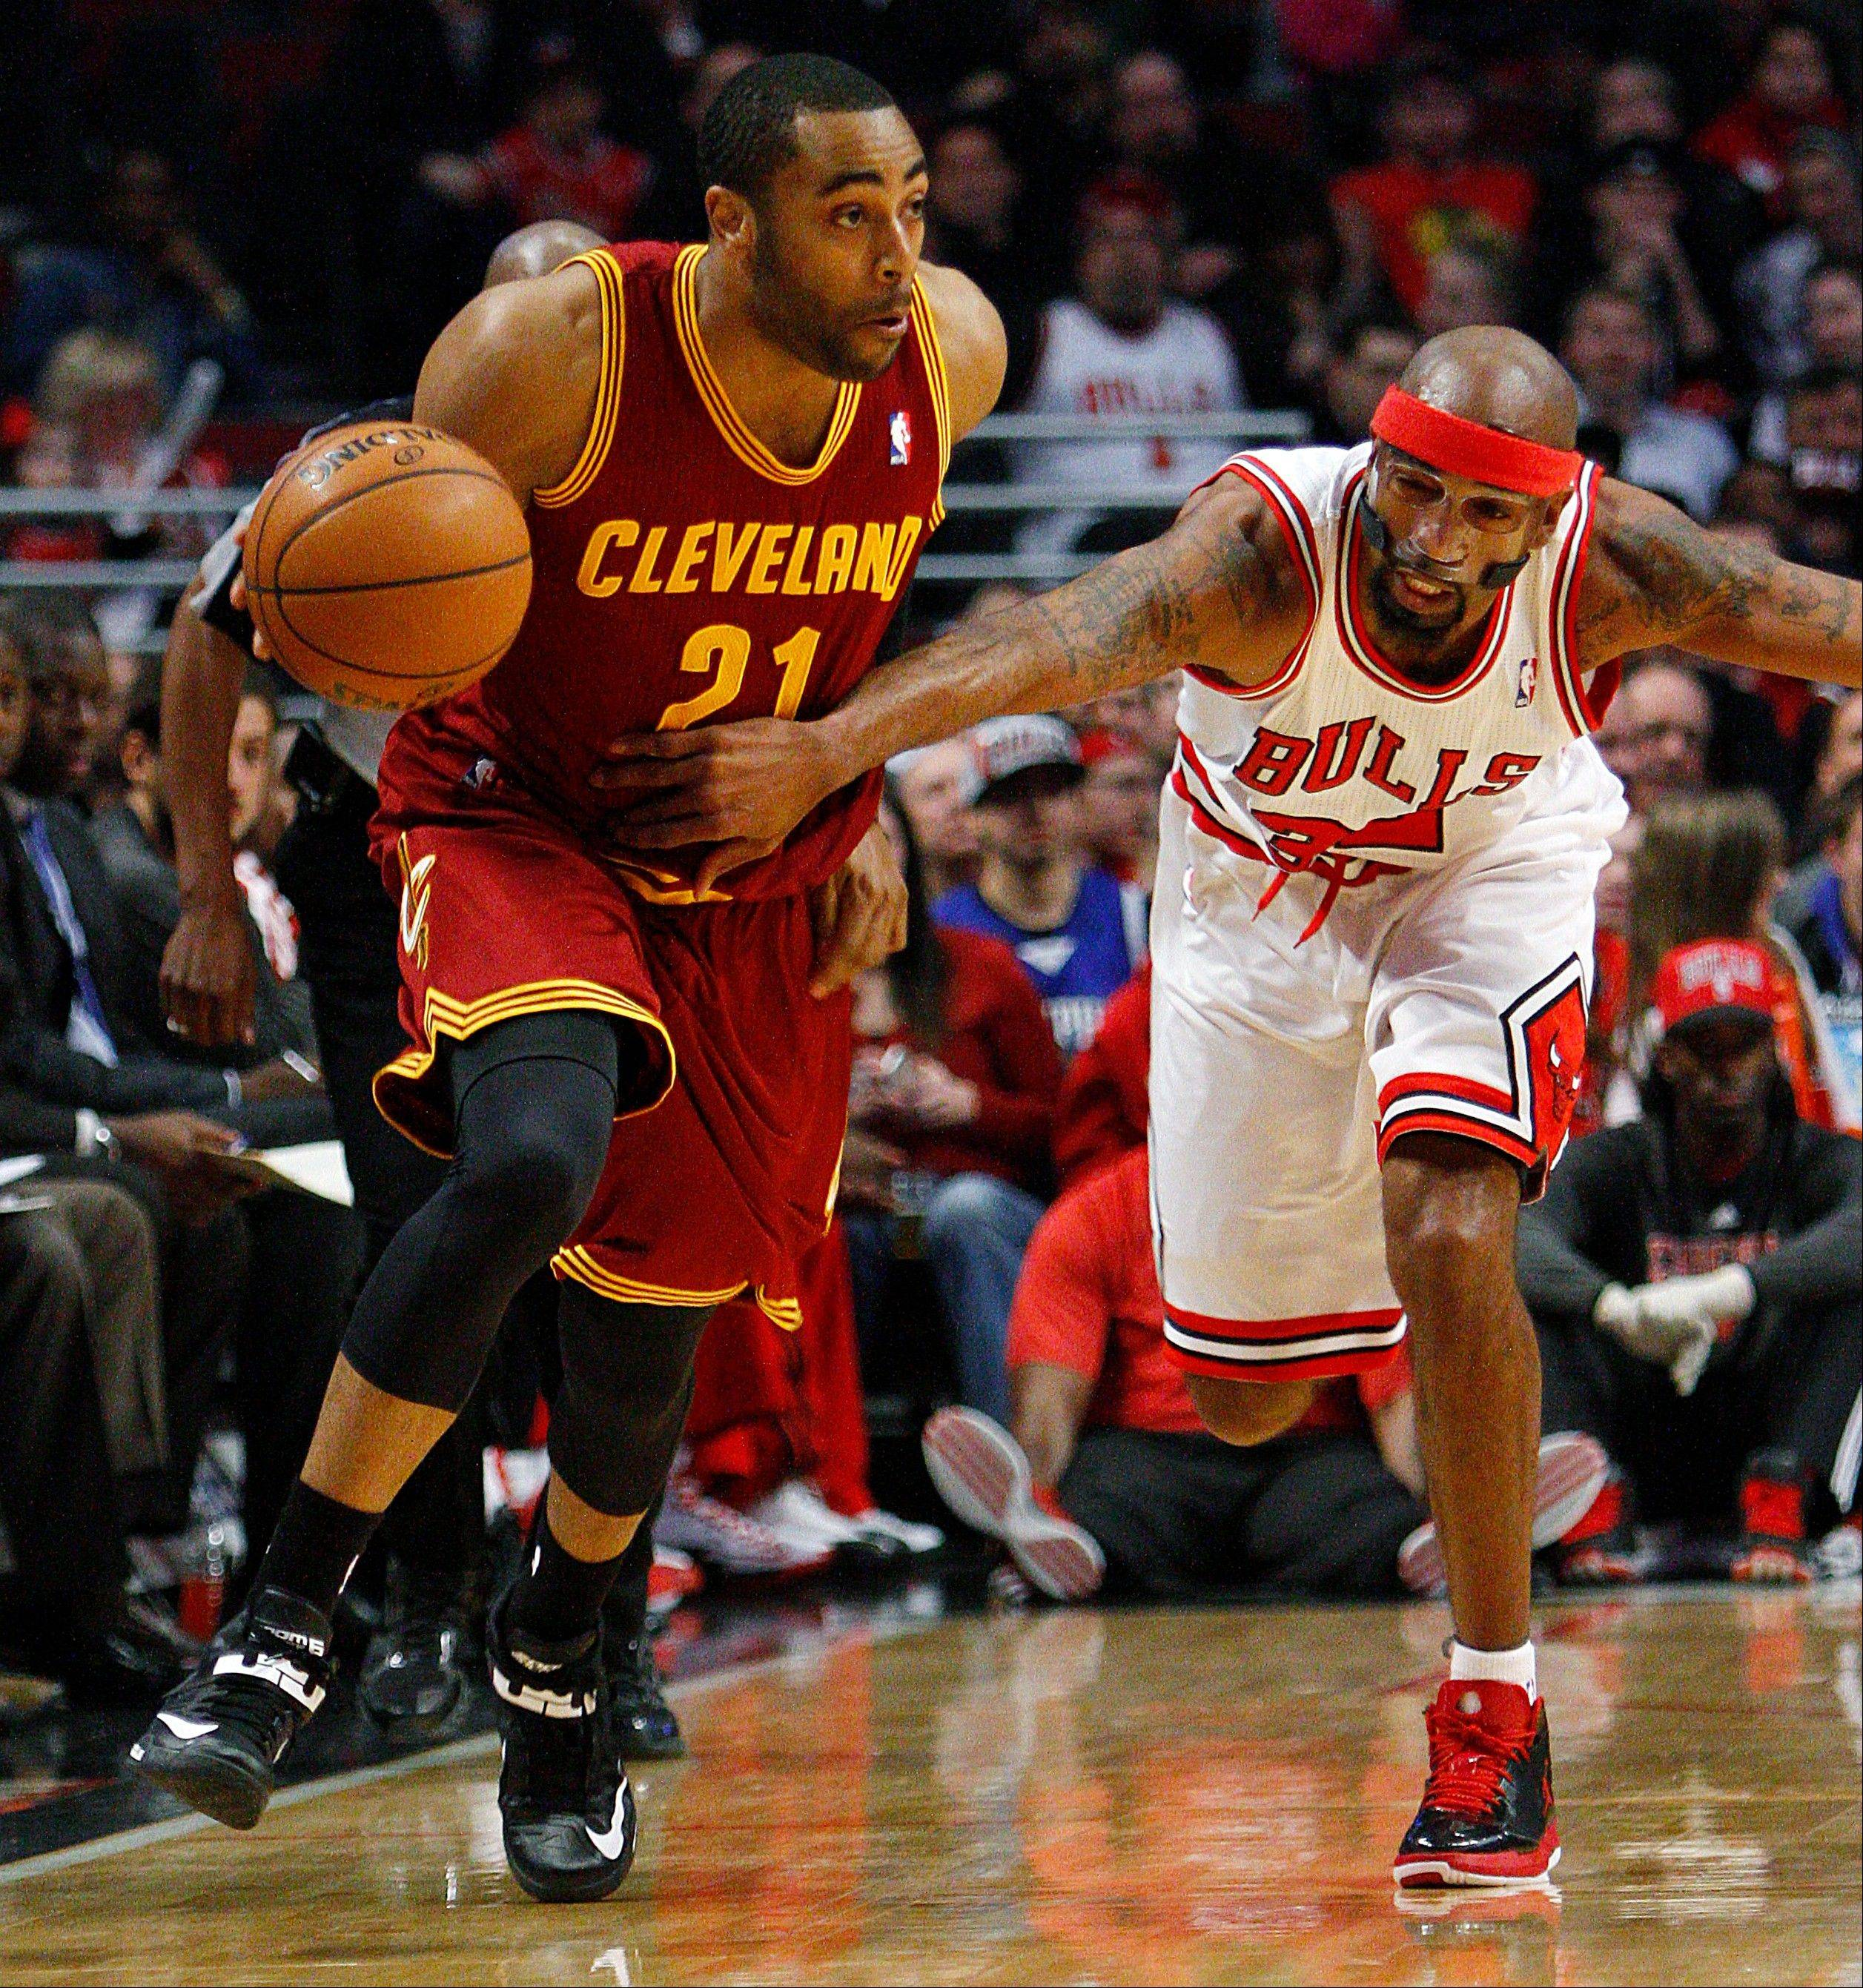 Chicago Bulls' Richard Hamilton, right, grabs the jersey of Cleveland Cavaliers' Wayne Ellington to stop him from a fast break during the first quarter of their NBA basketball game, Tuesday, Feb. 26, 2013, in Chicago.